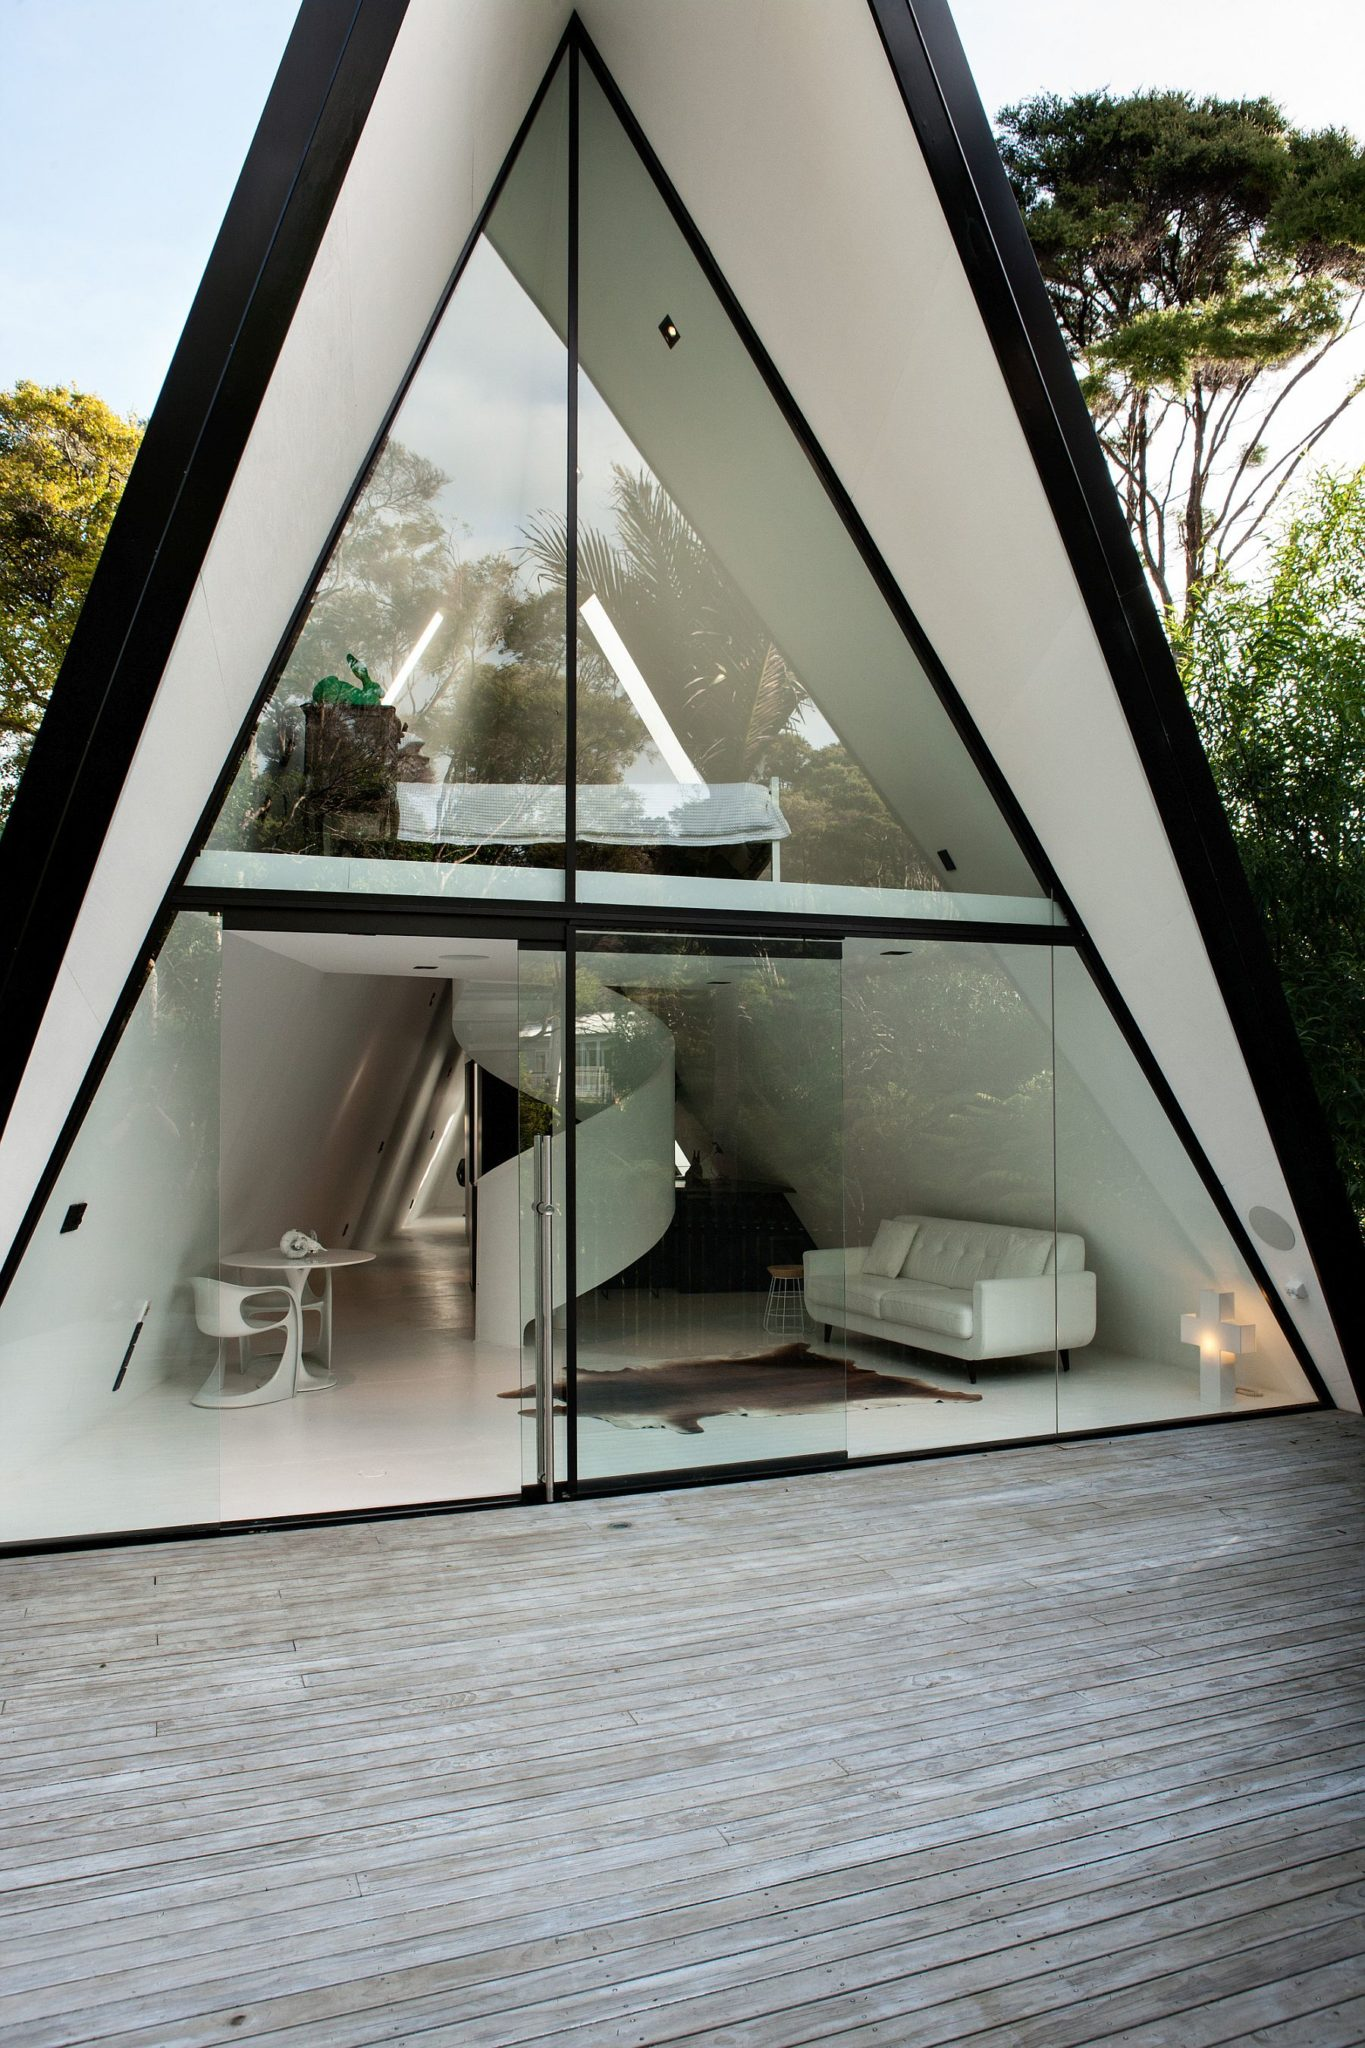 Tent house exceptional weekend retreat and studio cloaked Tent a house